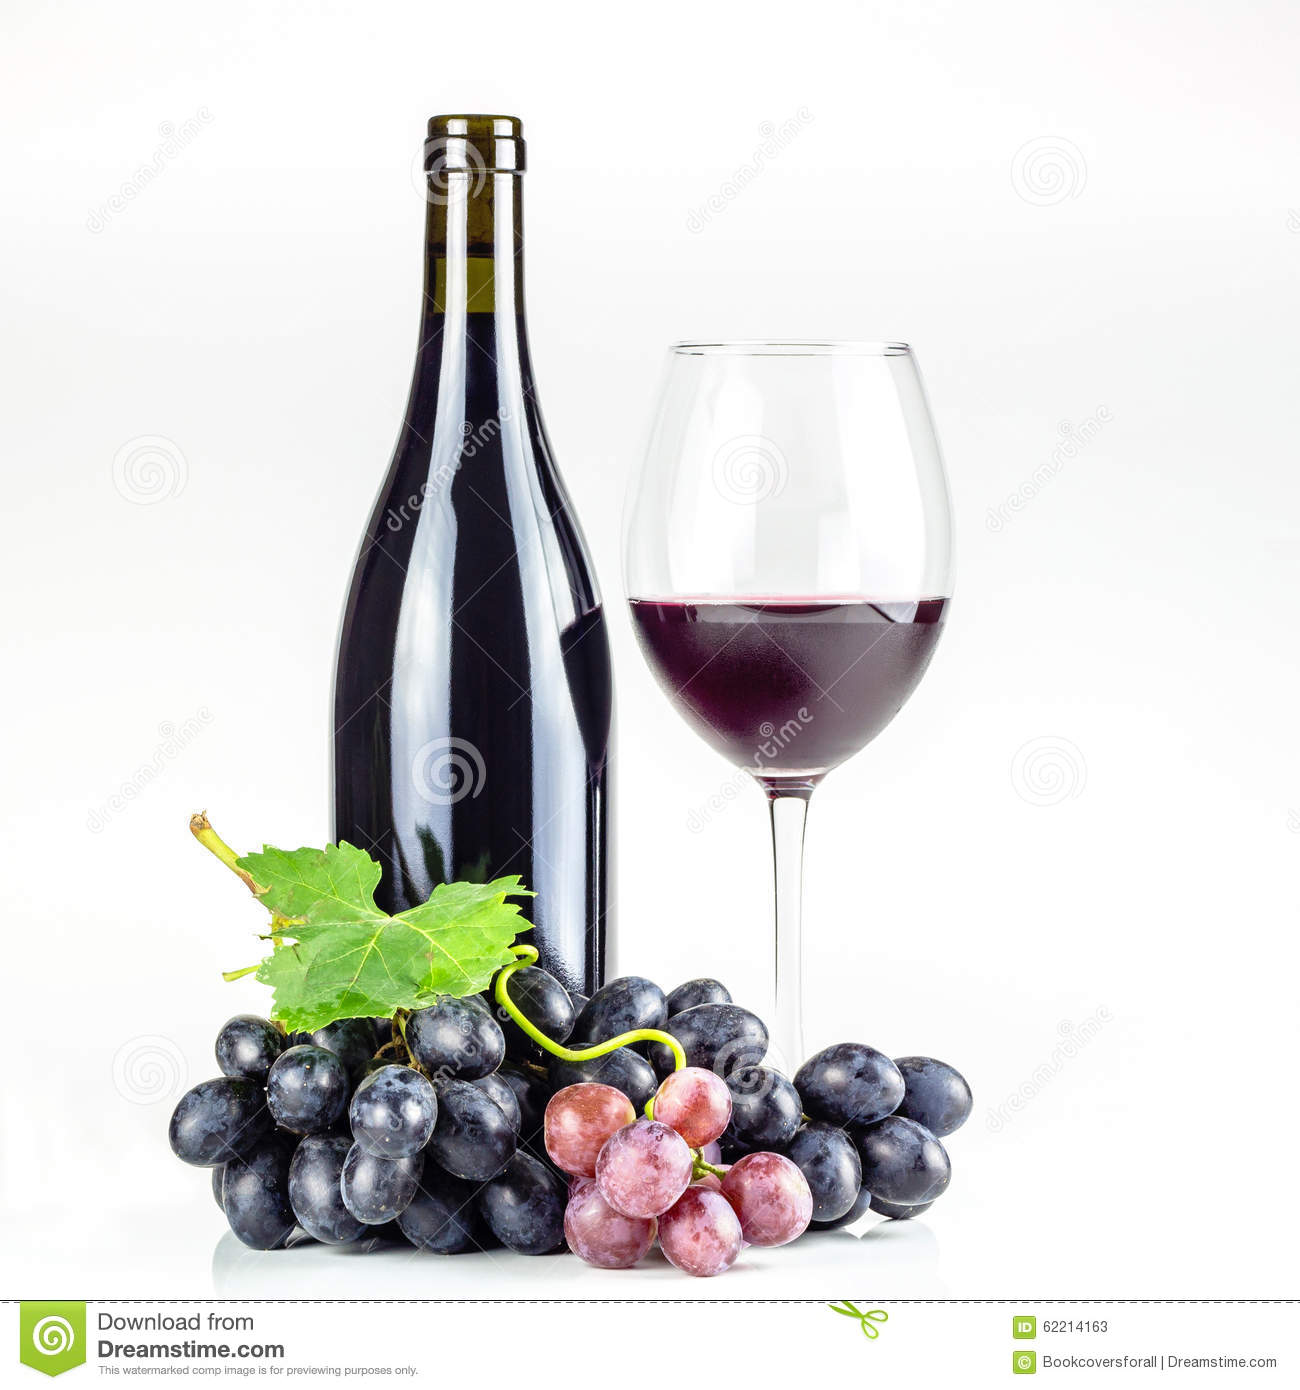 bouteille verre vin et raisins de vin rouge image stock image du compl tement raisins. Black Bedroom Furniture Sets. Home Design Ideas